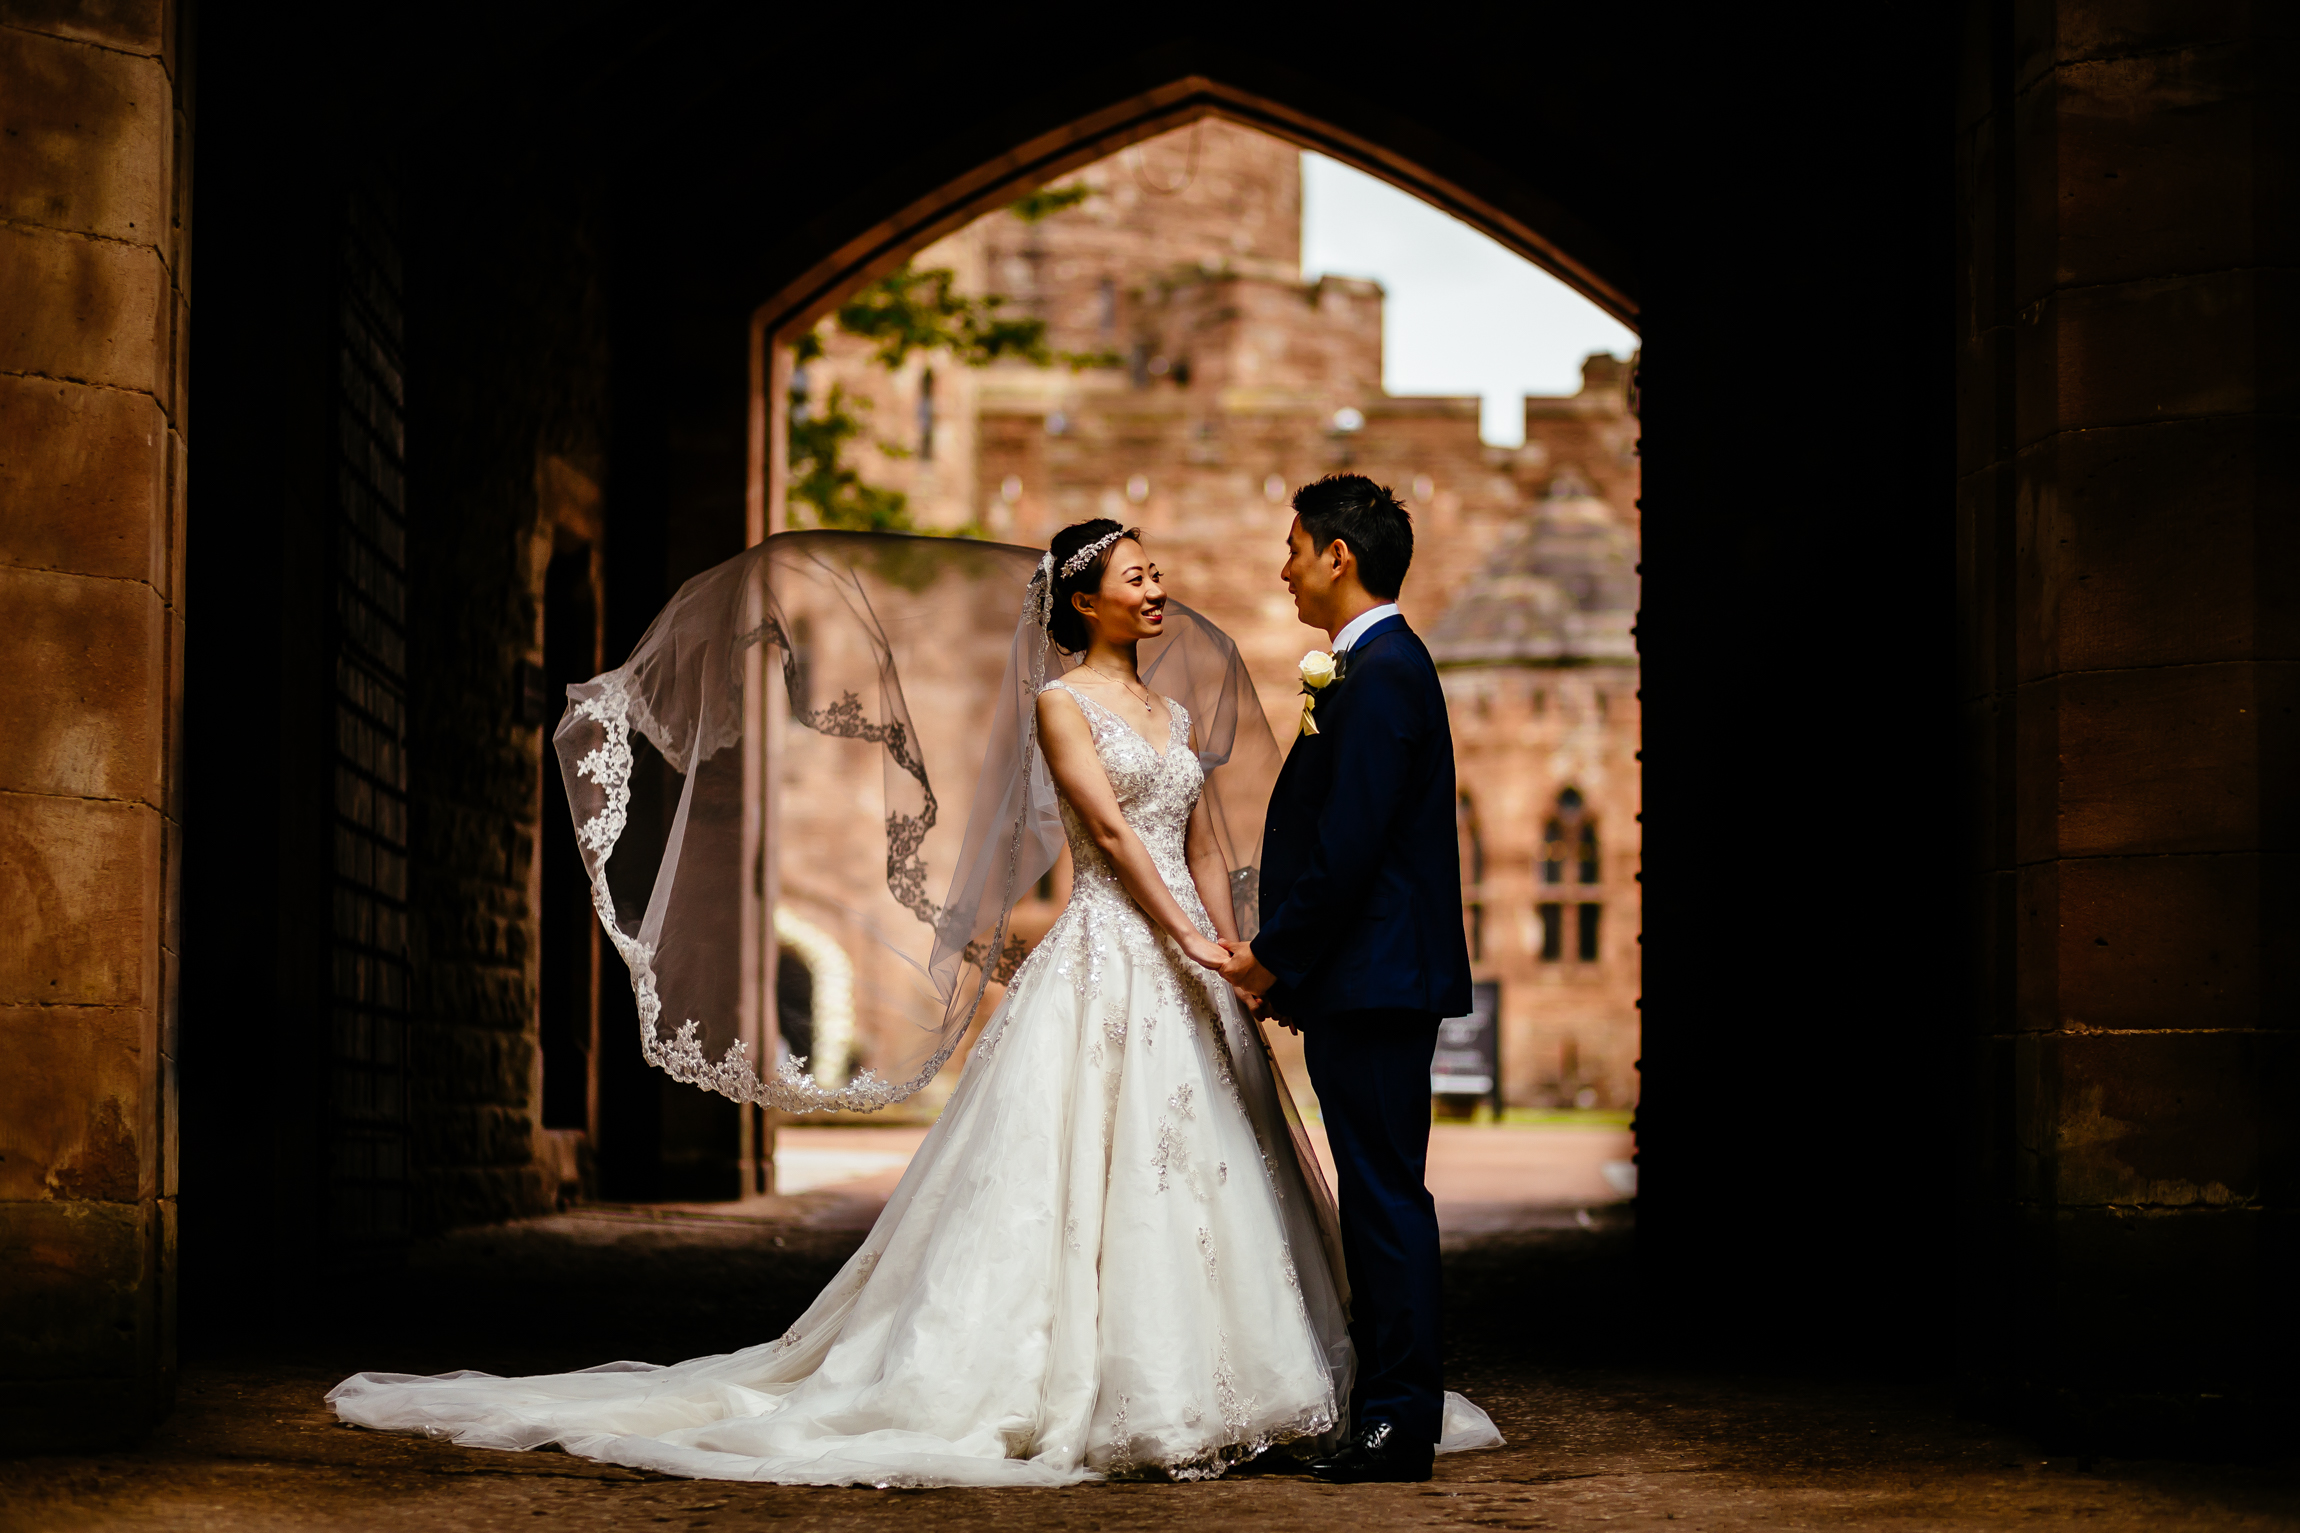 Sonia & Vincent - Sansom Photography Peckforton Castle Wedding Photography-65